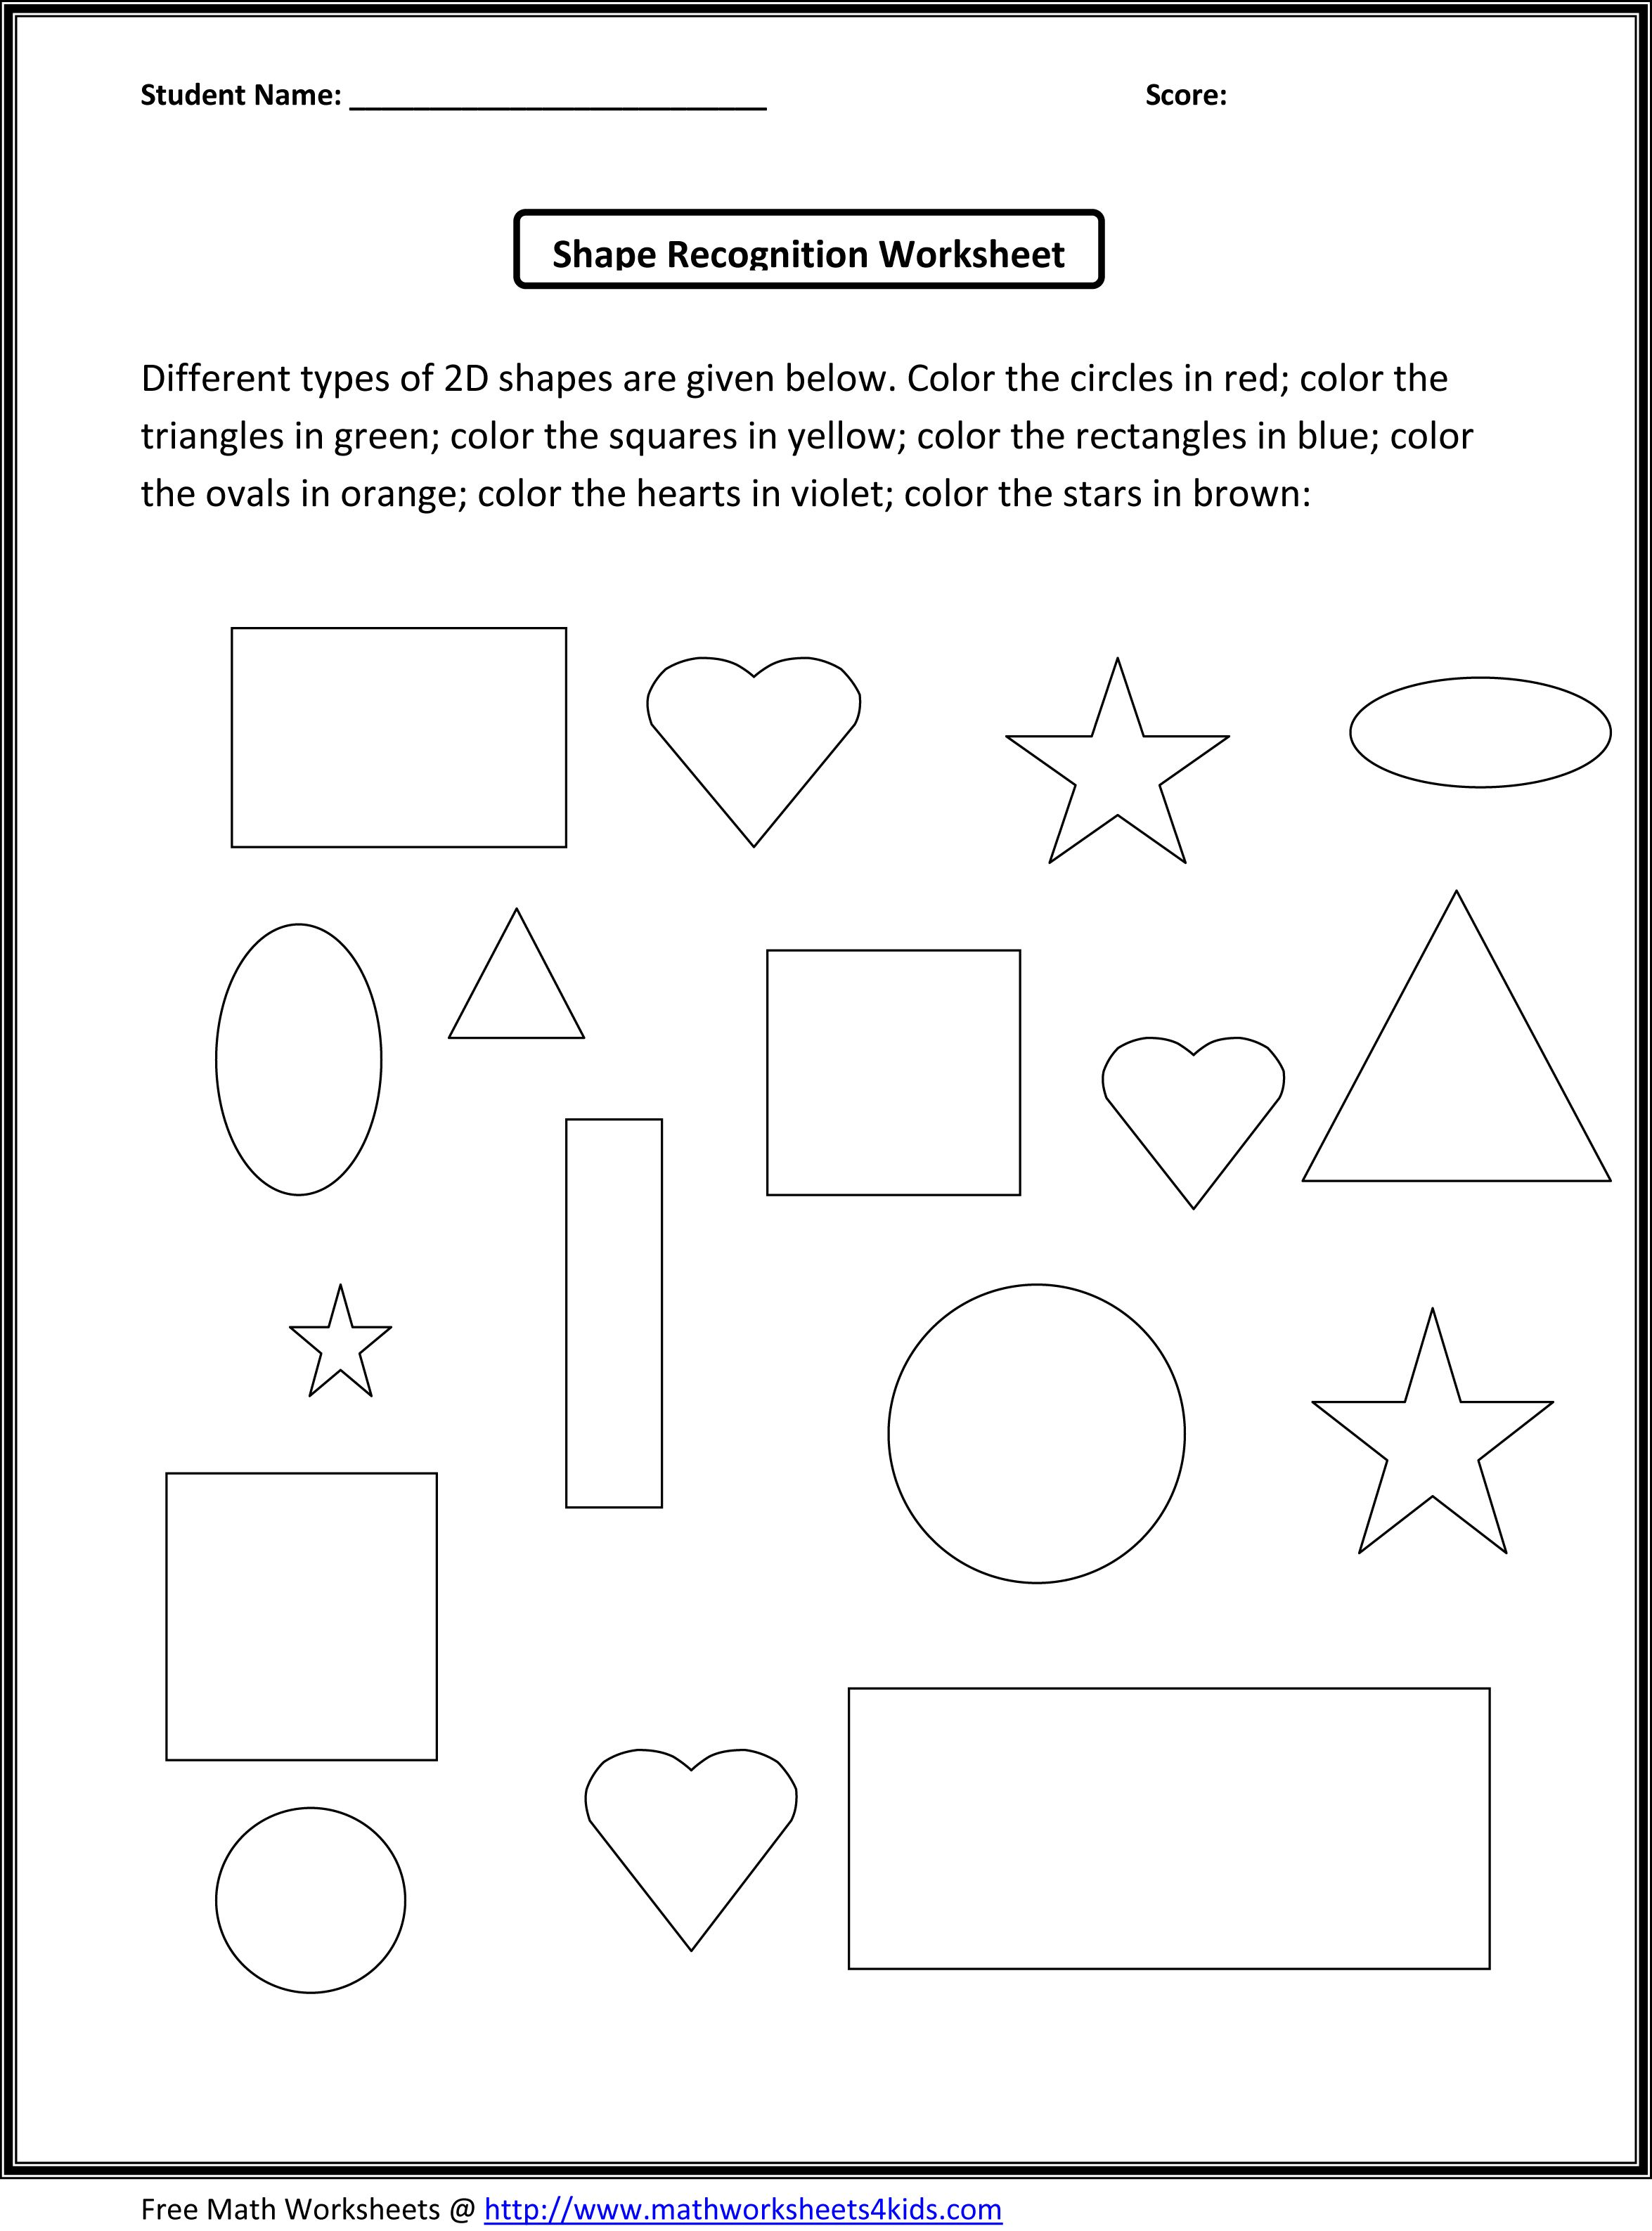 math worksheet : spanish worksheets for kindergarten  bac 2 2th primary 2  : Worksheet For Kindergarten